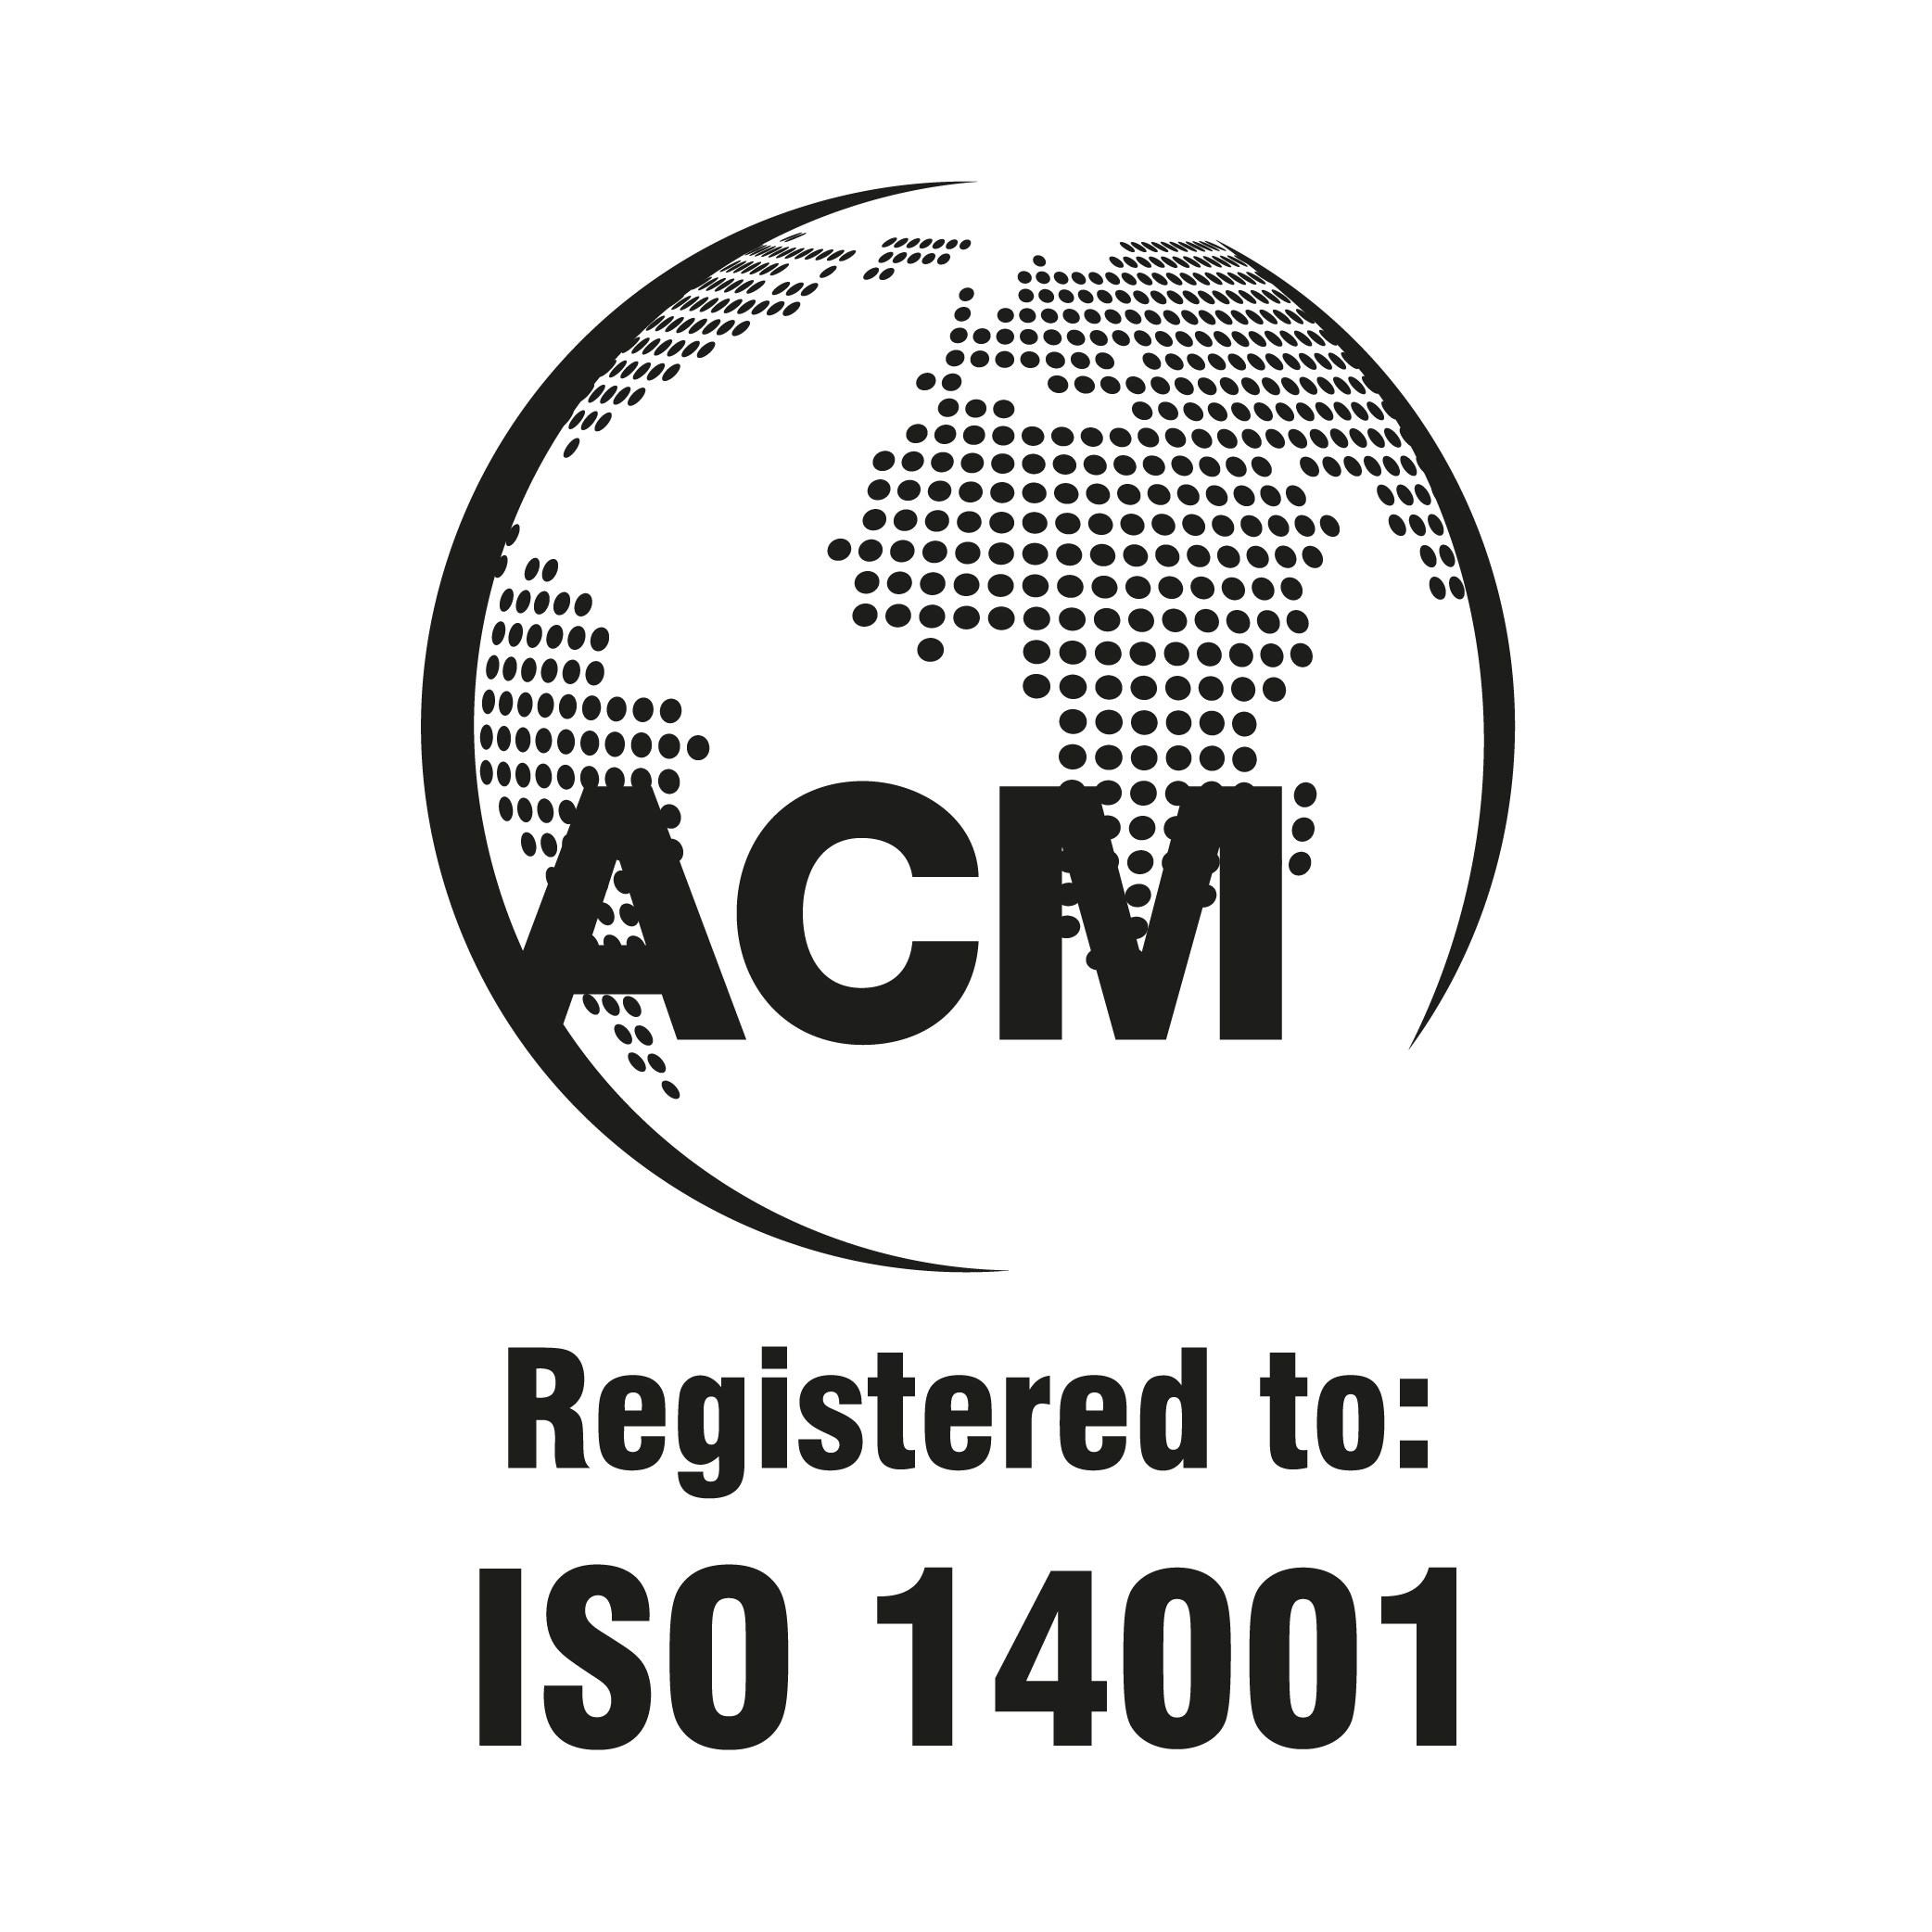 QUALITY MANAGEMENT SYSTEMS - Independently assessed and compliant with the requirements of ISO 14001: 2015